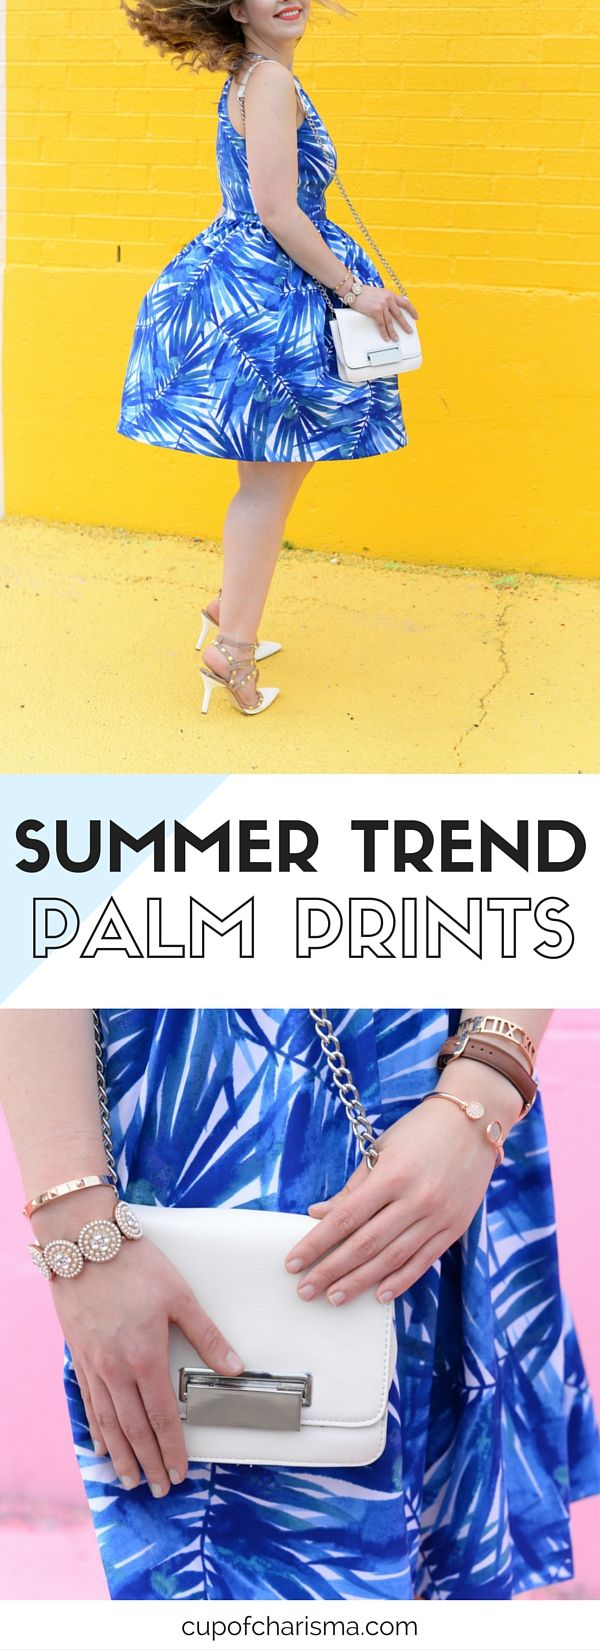 Summer Trend: How to Style a Palm Tree Print Staple Dress http://cupofcharisma.com/2016/06/palm-tree-printed-dress/?utm_campaign=coschedule&utm_source=pinterest&utm_medium=Jillian%20-%20Cup%20of%20Charisma&utm_content=Palm%20Tree%20Print%20Dress